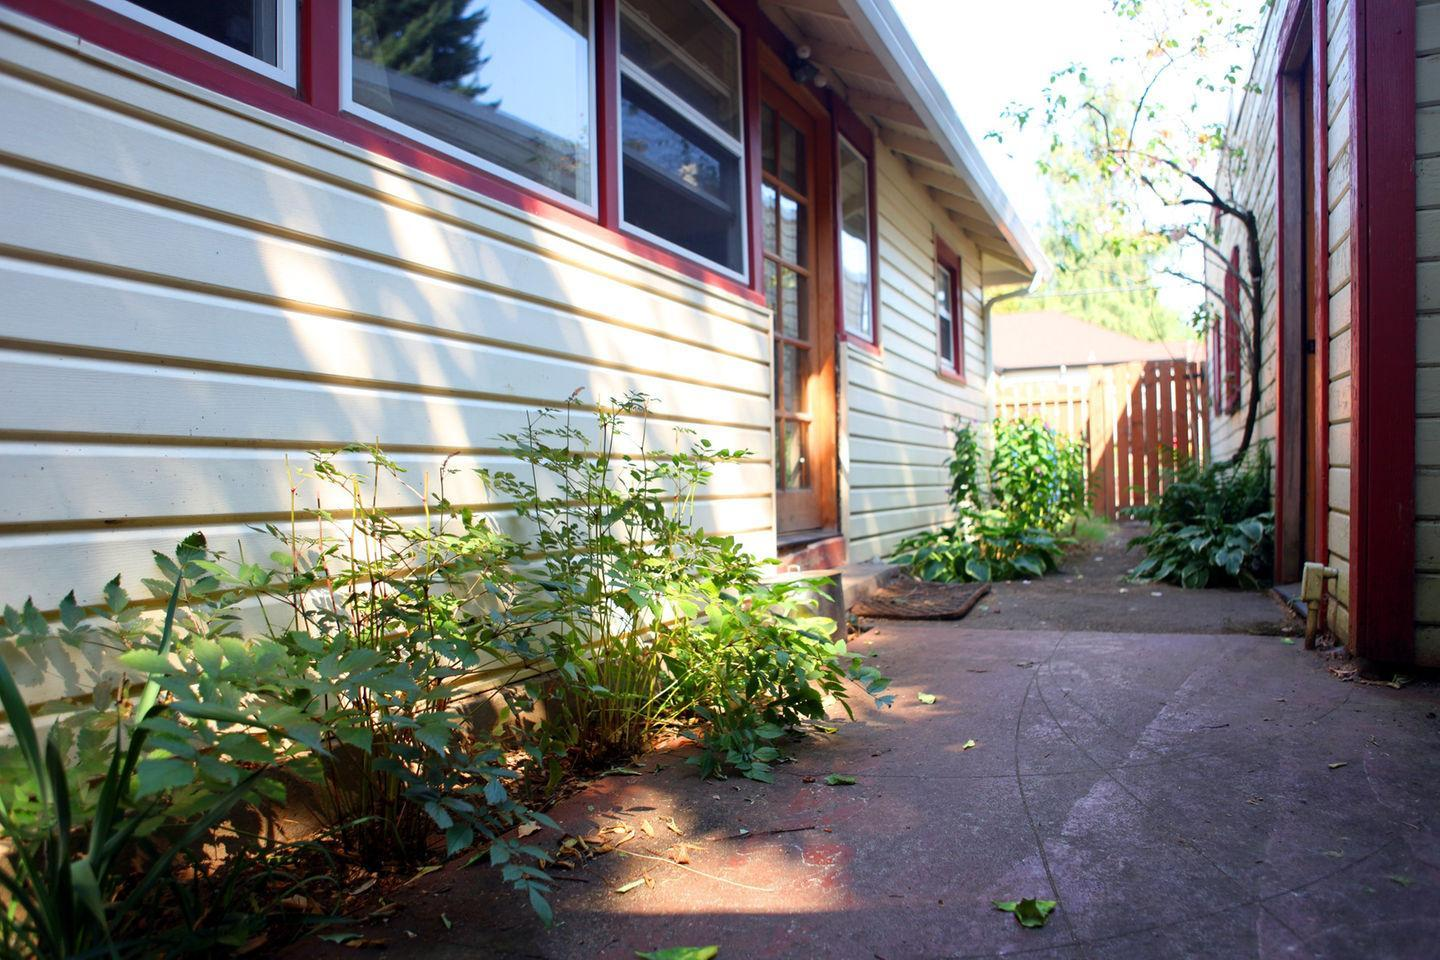 washougal chat sites Bid on the auction property at 2442 n washougal river rd in washougal washington for free register today to find other auction properties in washington.